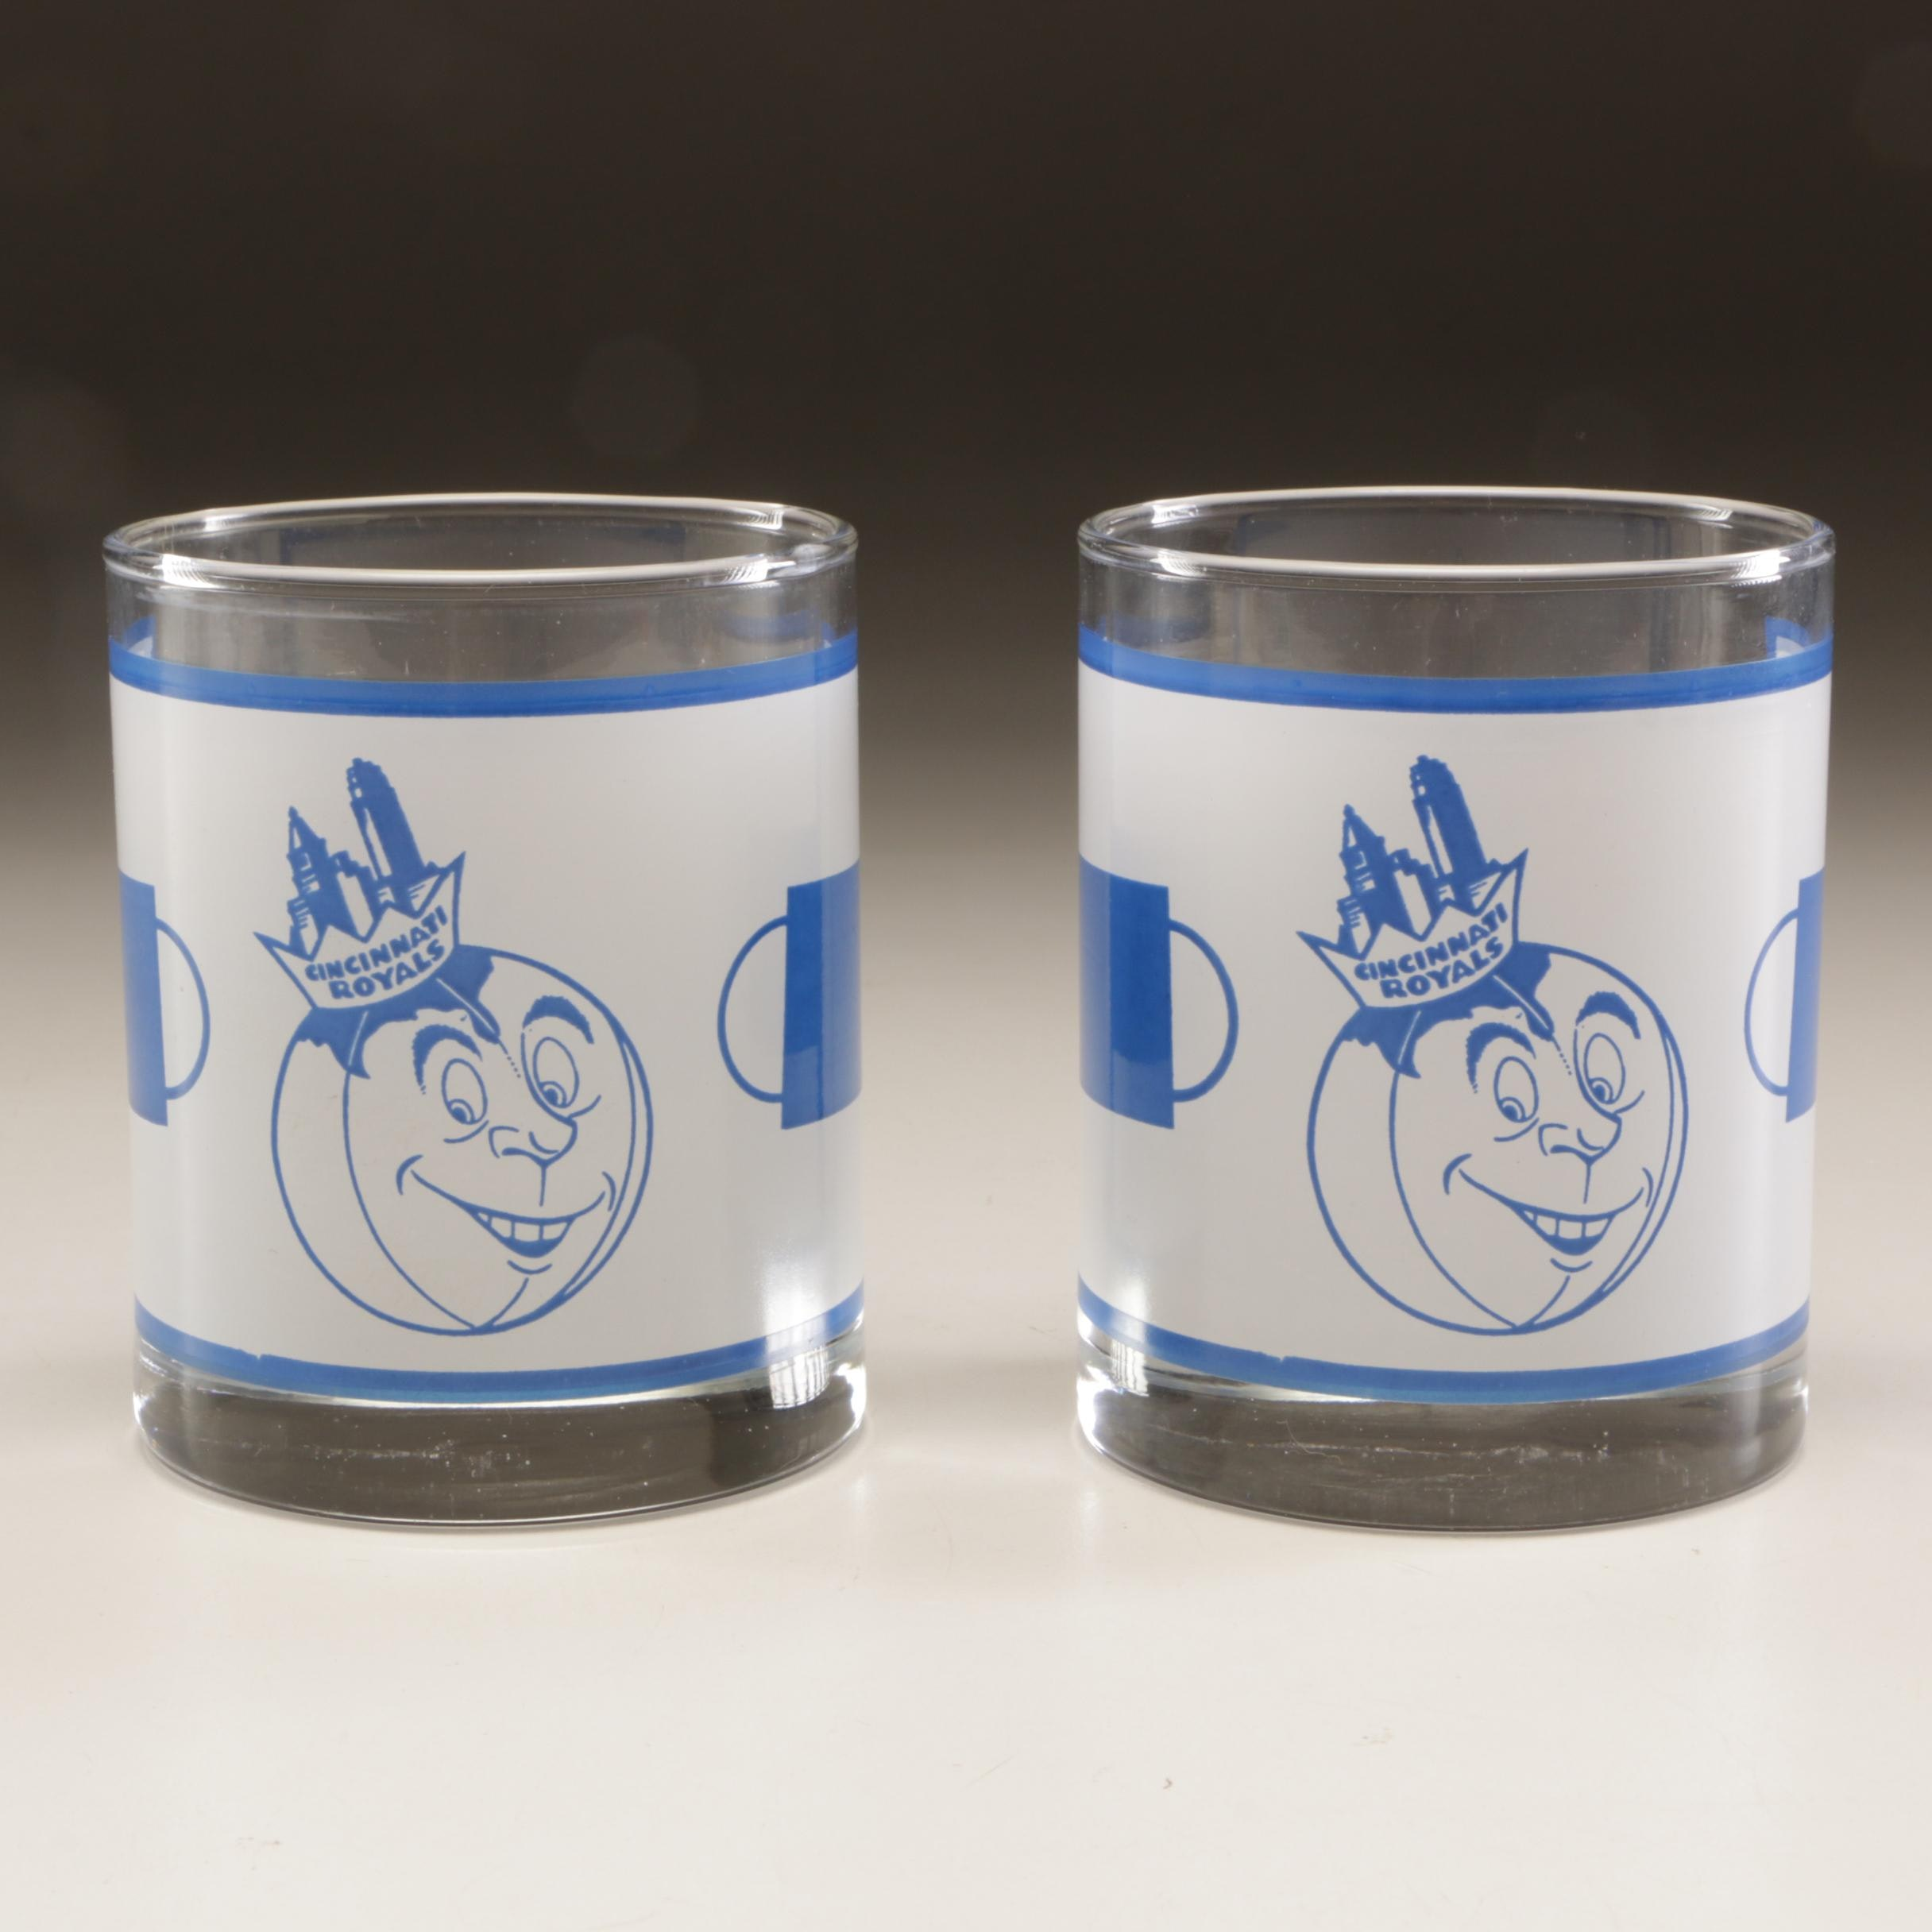 Two 1960s-1970s Cincinnati Royals NBA Basketball Mascot Tumblers